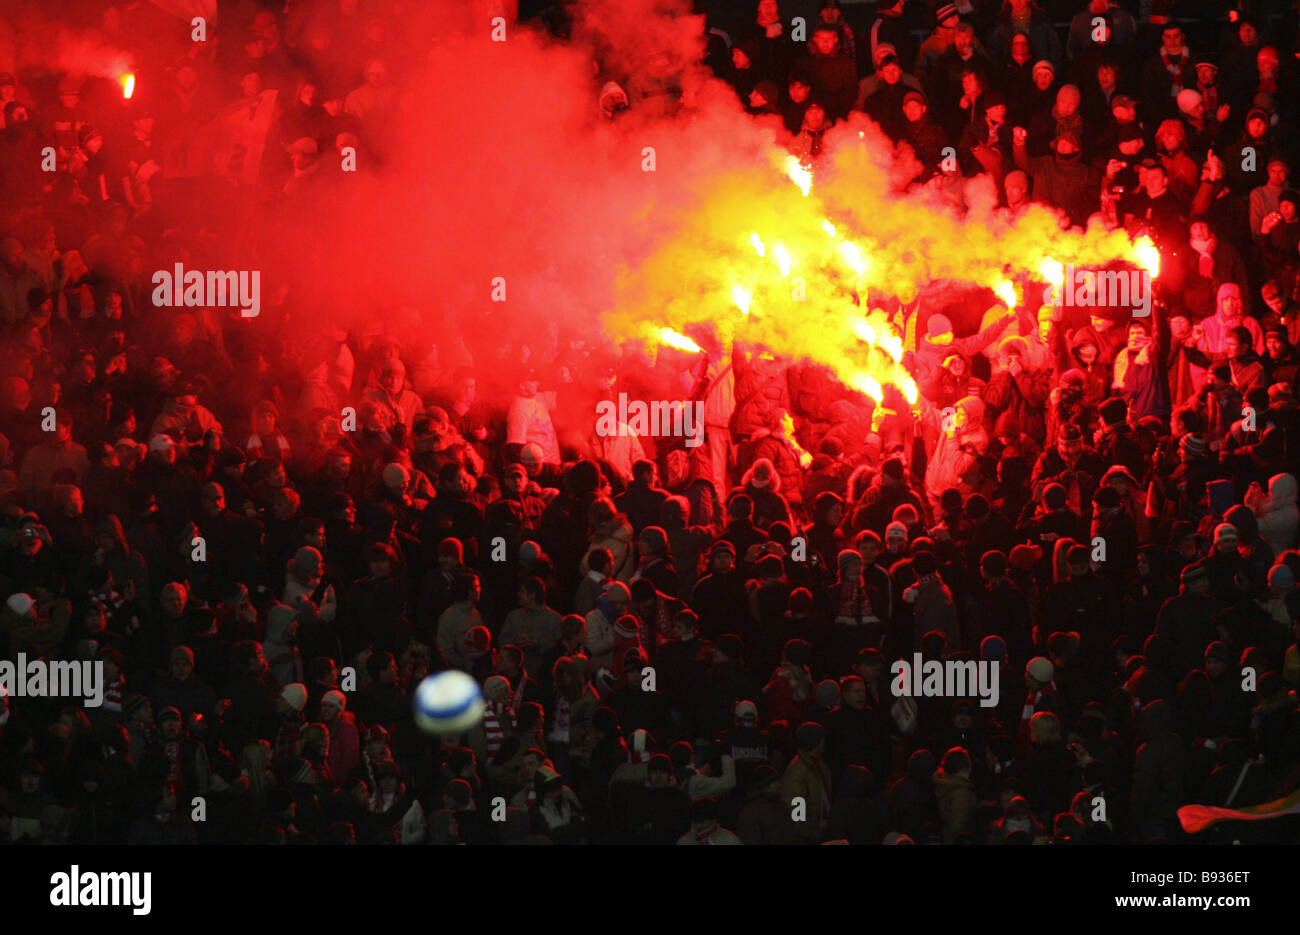 Spartak Moscow beat Bayer Germany 2 1 in an E group soccer match in Moscow Fans setting off fireworks in the stands - Stock Image